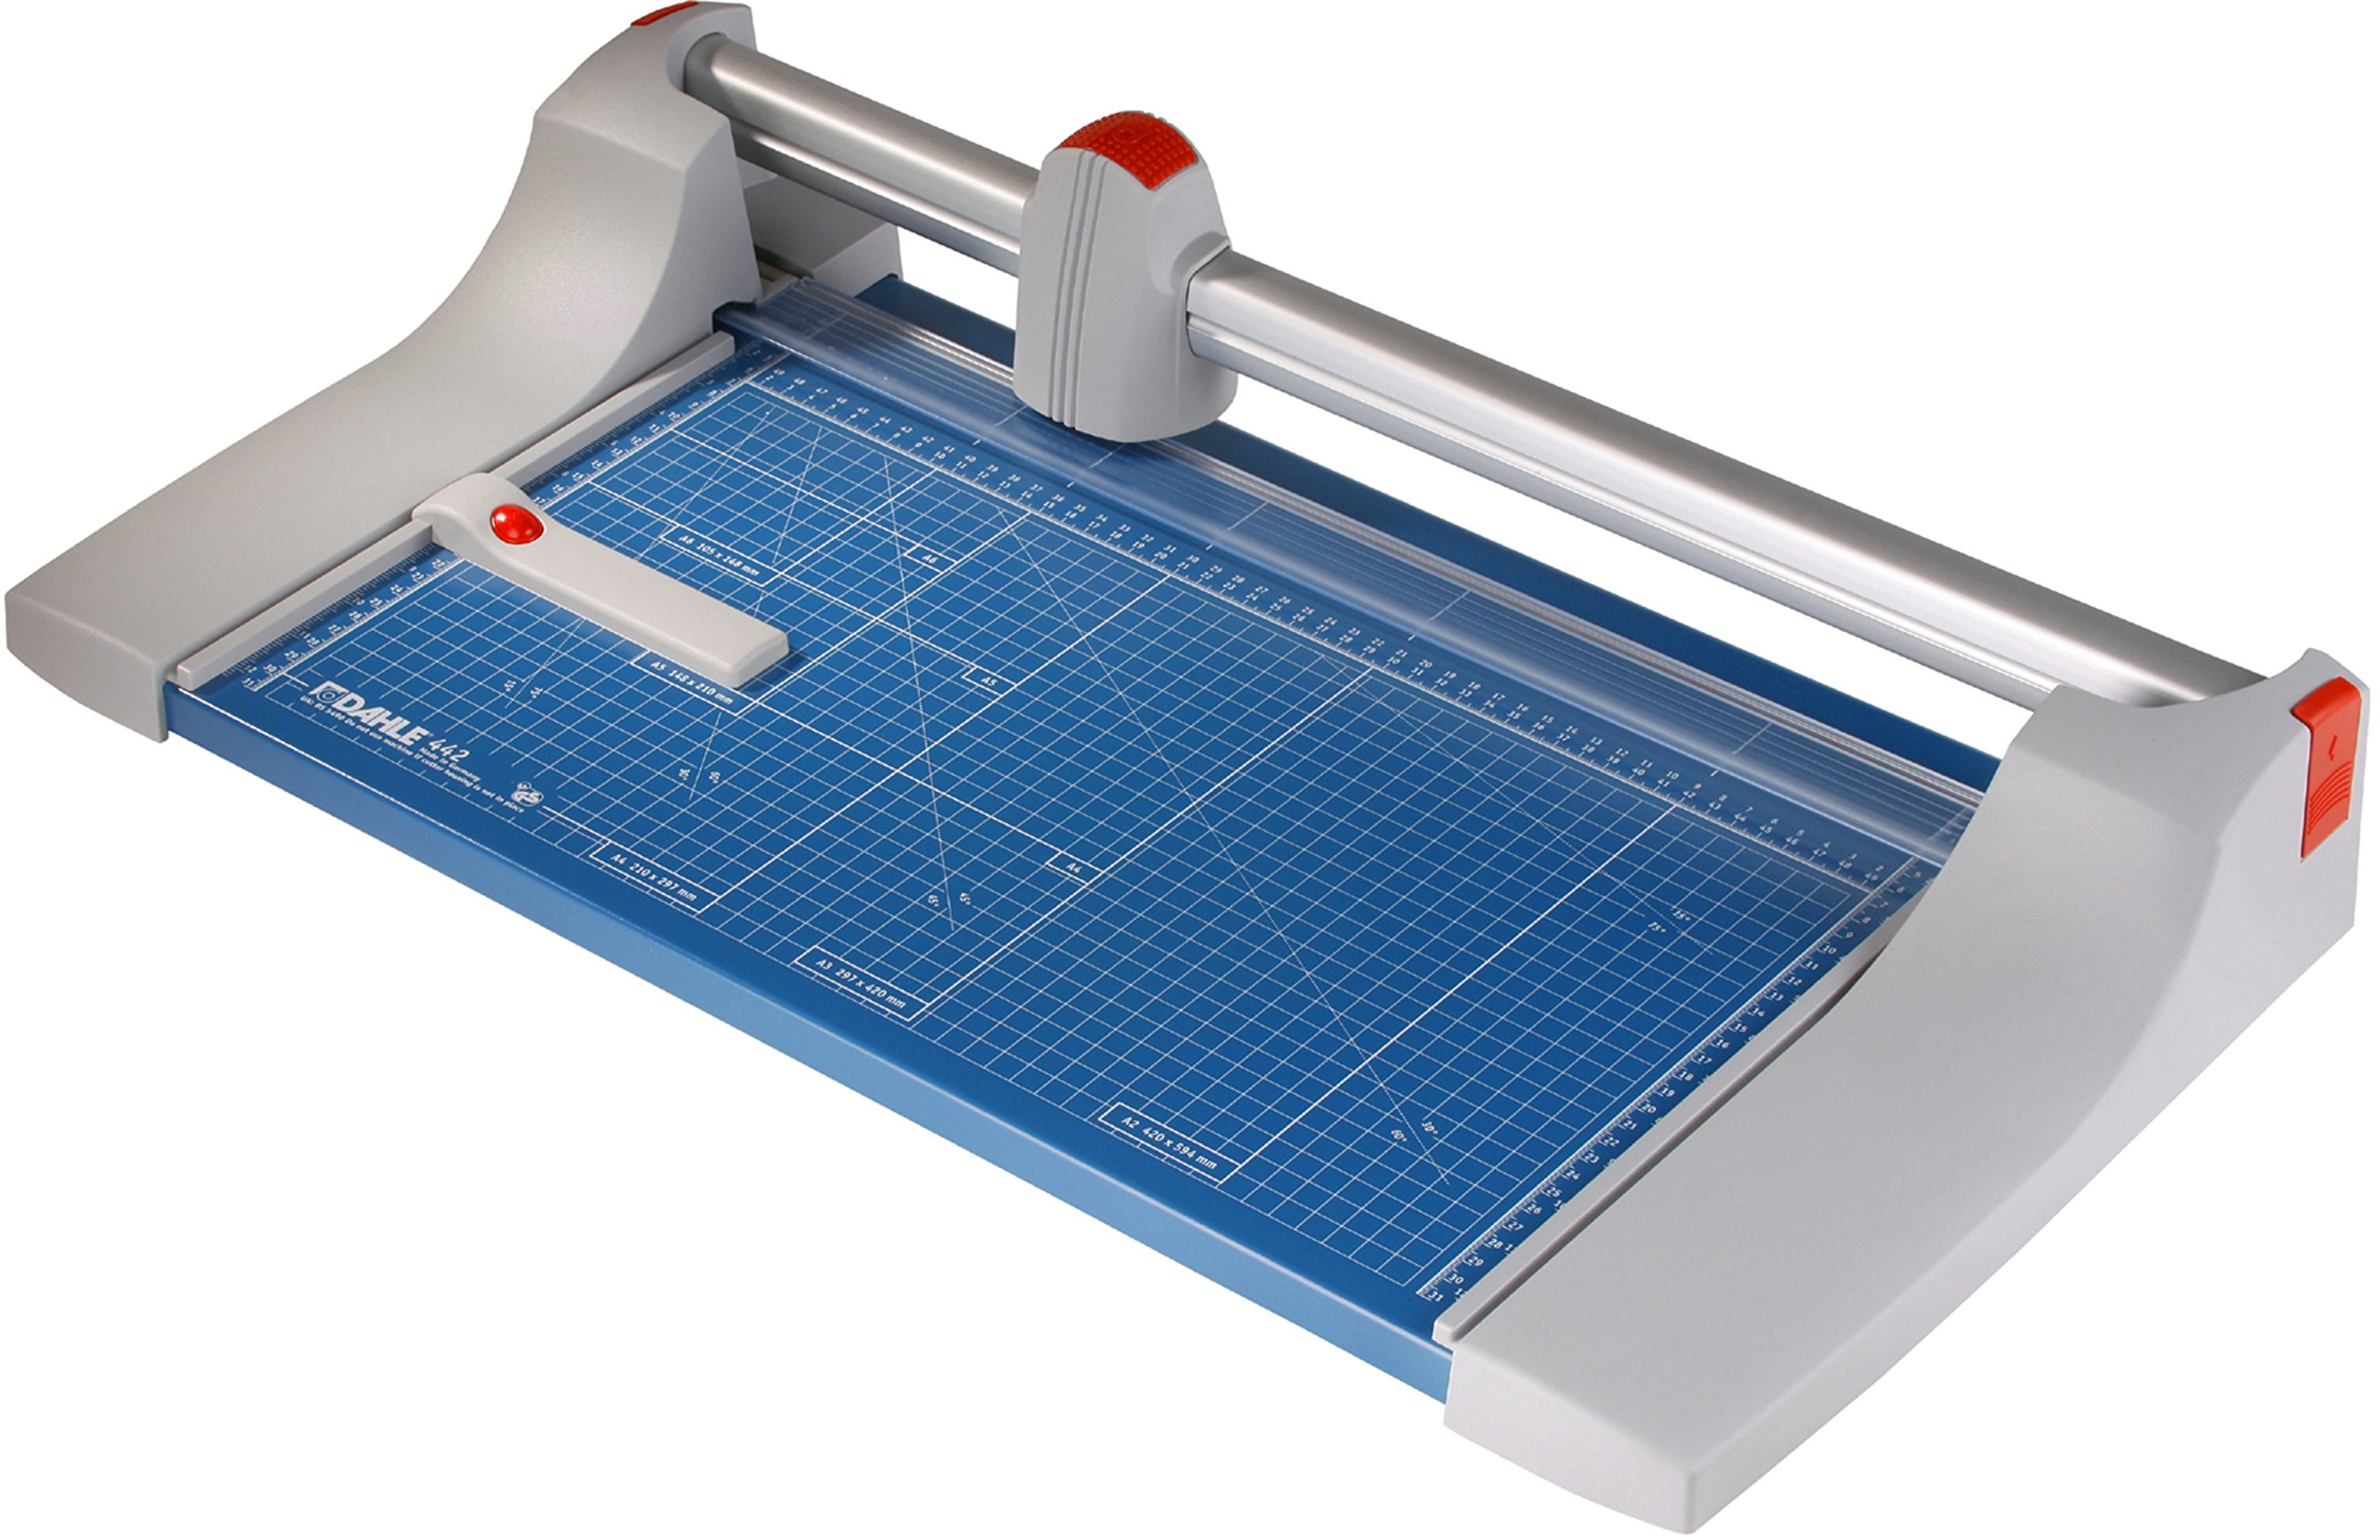 Dahle 442 Premium Rolling Trimmer, 20'' Cut Length, 30 Sheet Capacity, Self-Sharpening, Automatic Clamp, German Engineered Paper Cutter by Dahle